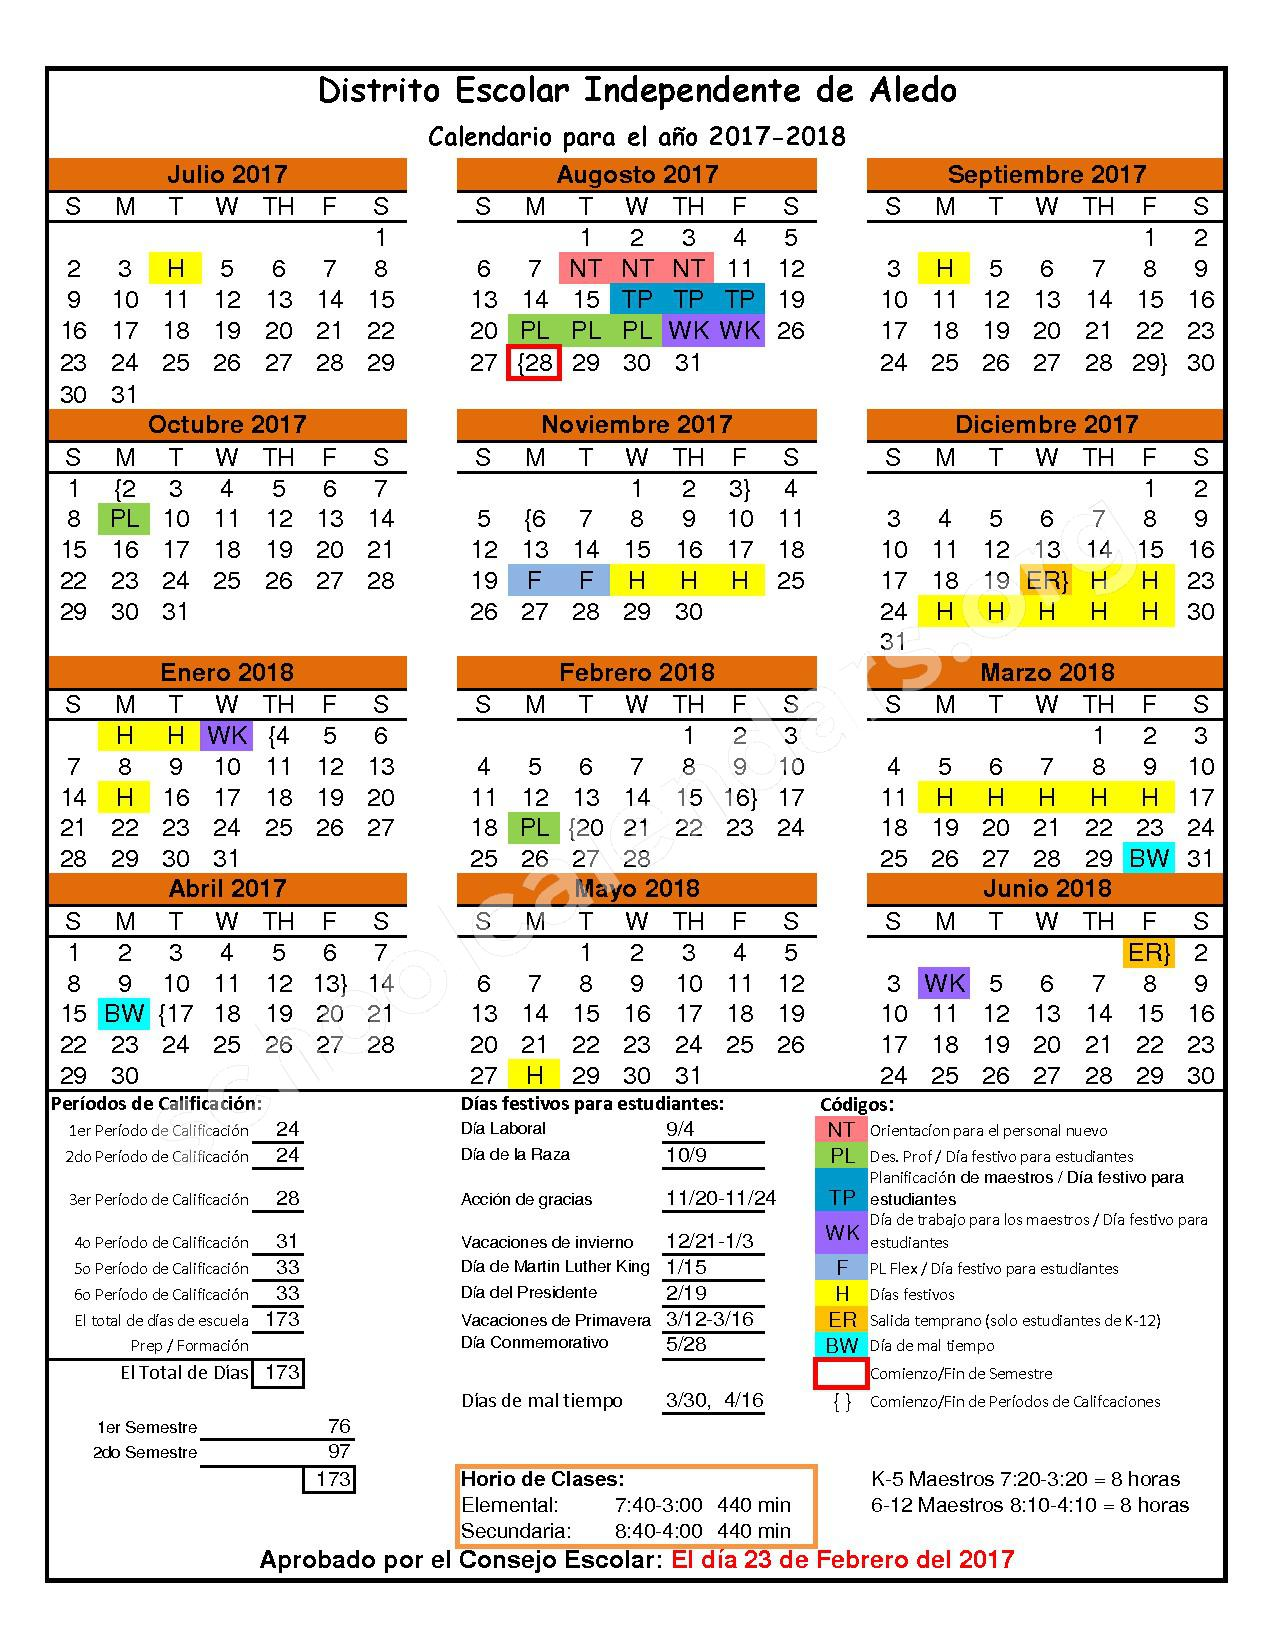 2017 - 2018 District Calendar – Aledo Independent School District – page 1